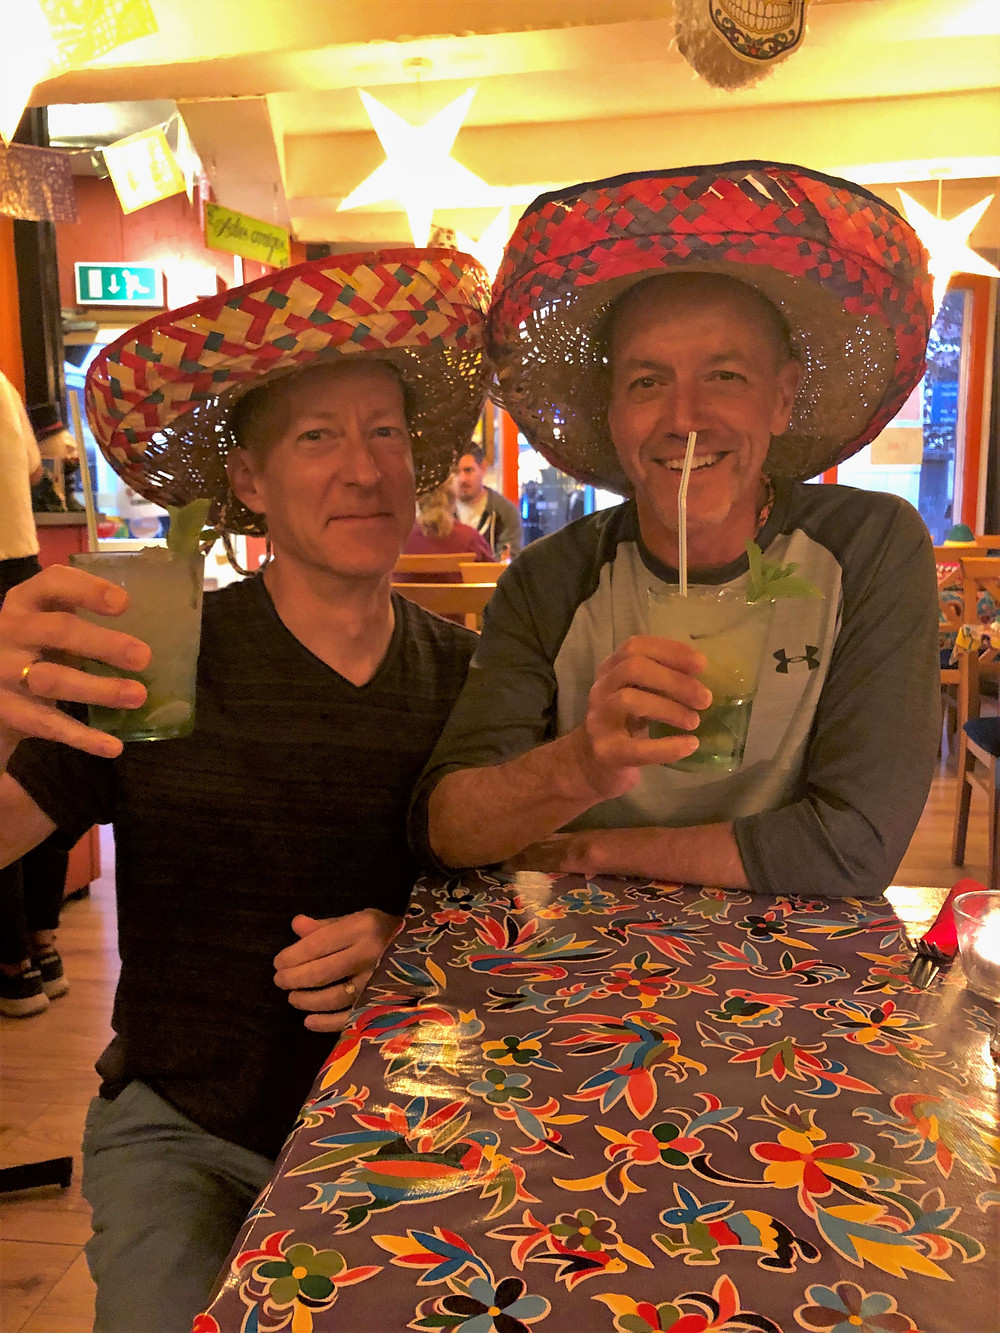 Drinking mojitos at Mexican restaurant in Brighton, England